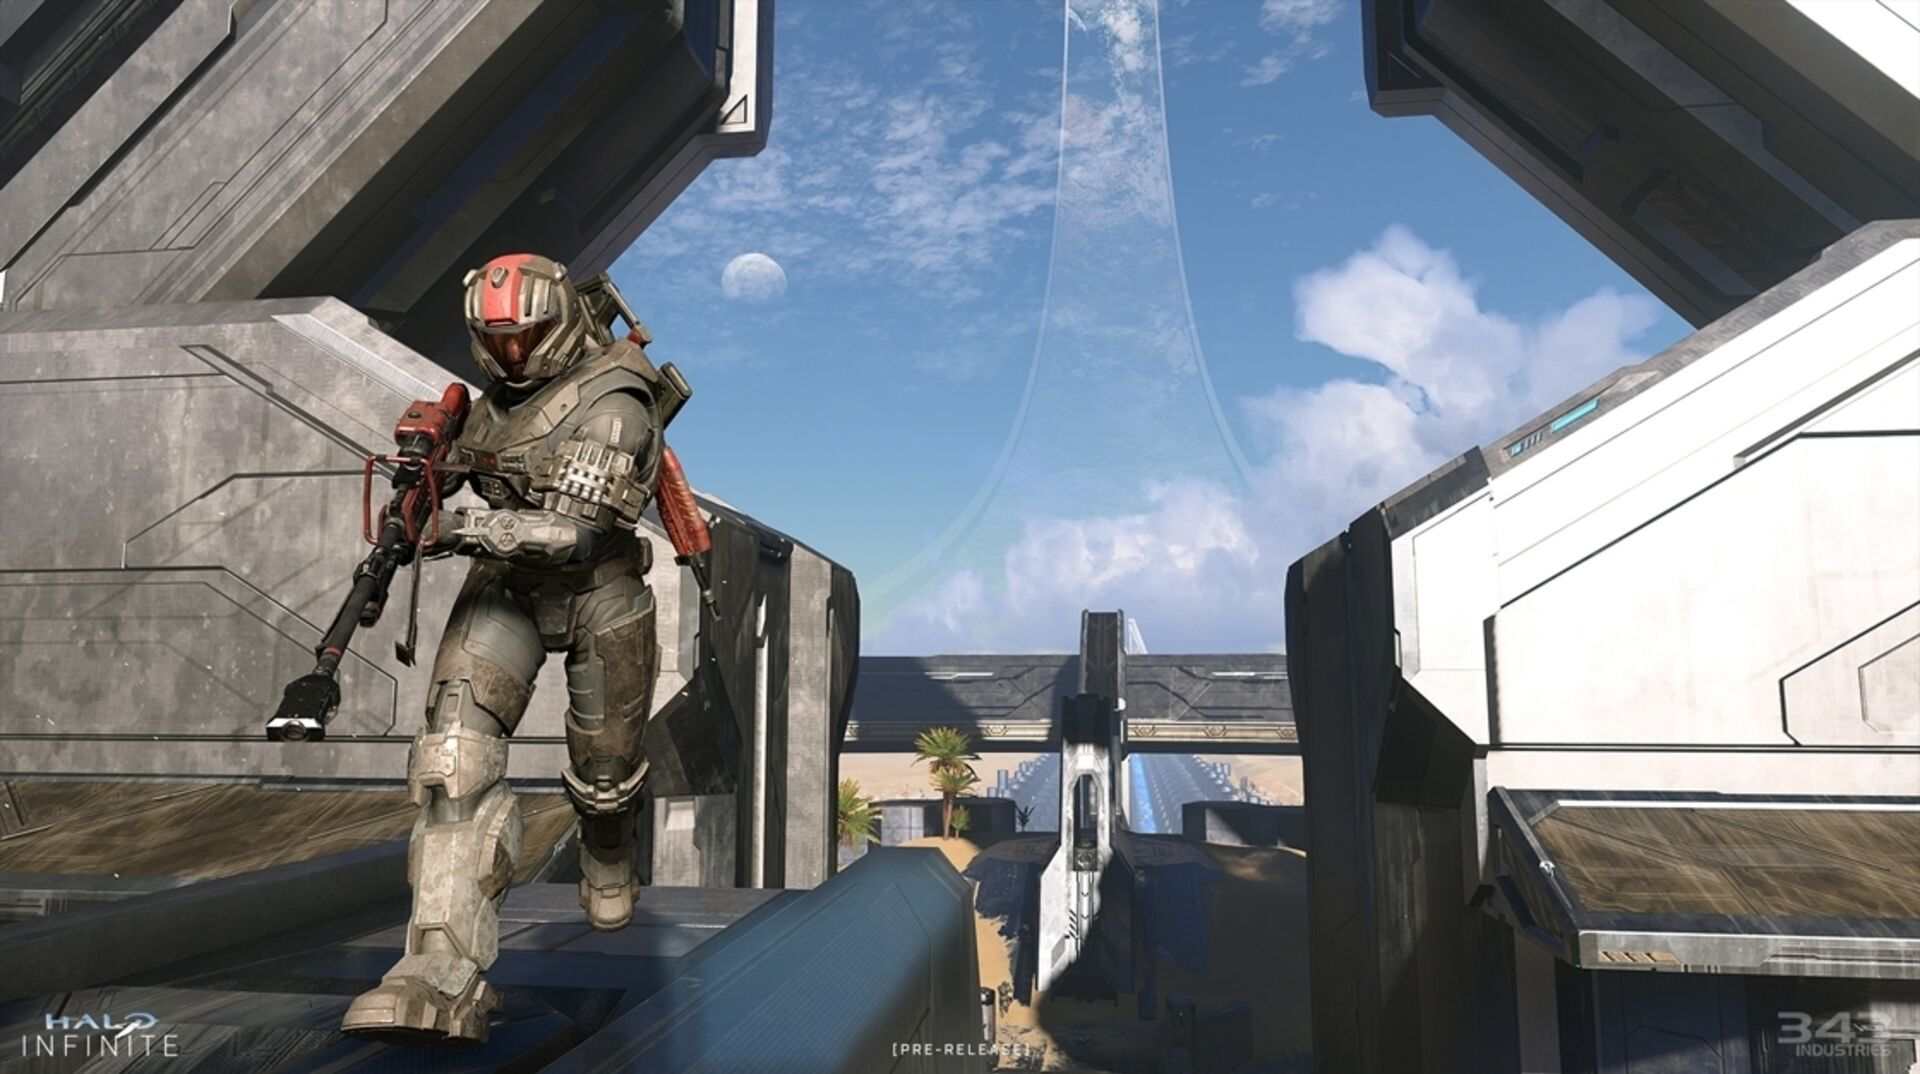 First look at Halo Infinite multiplayer • Eurogamer.net